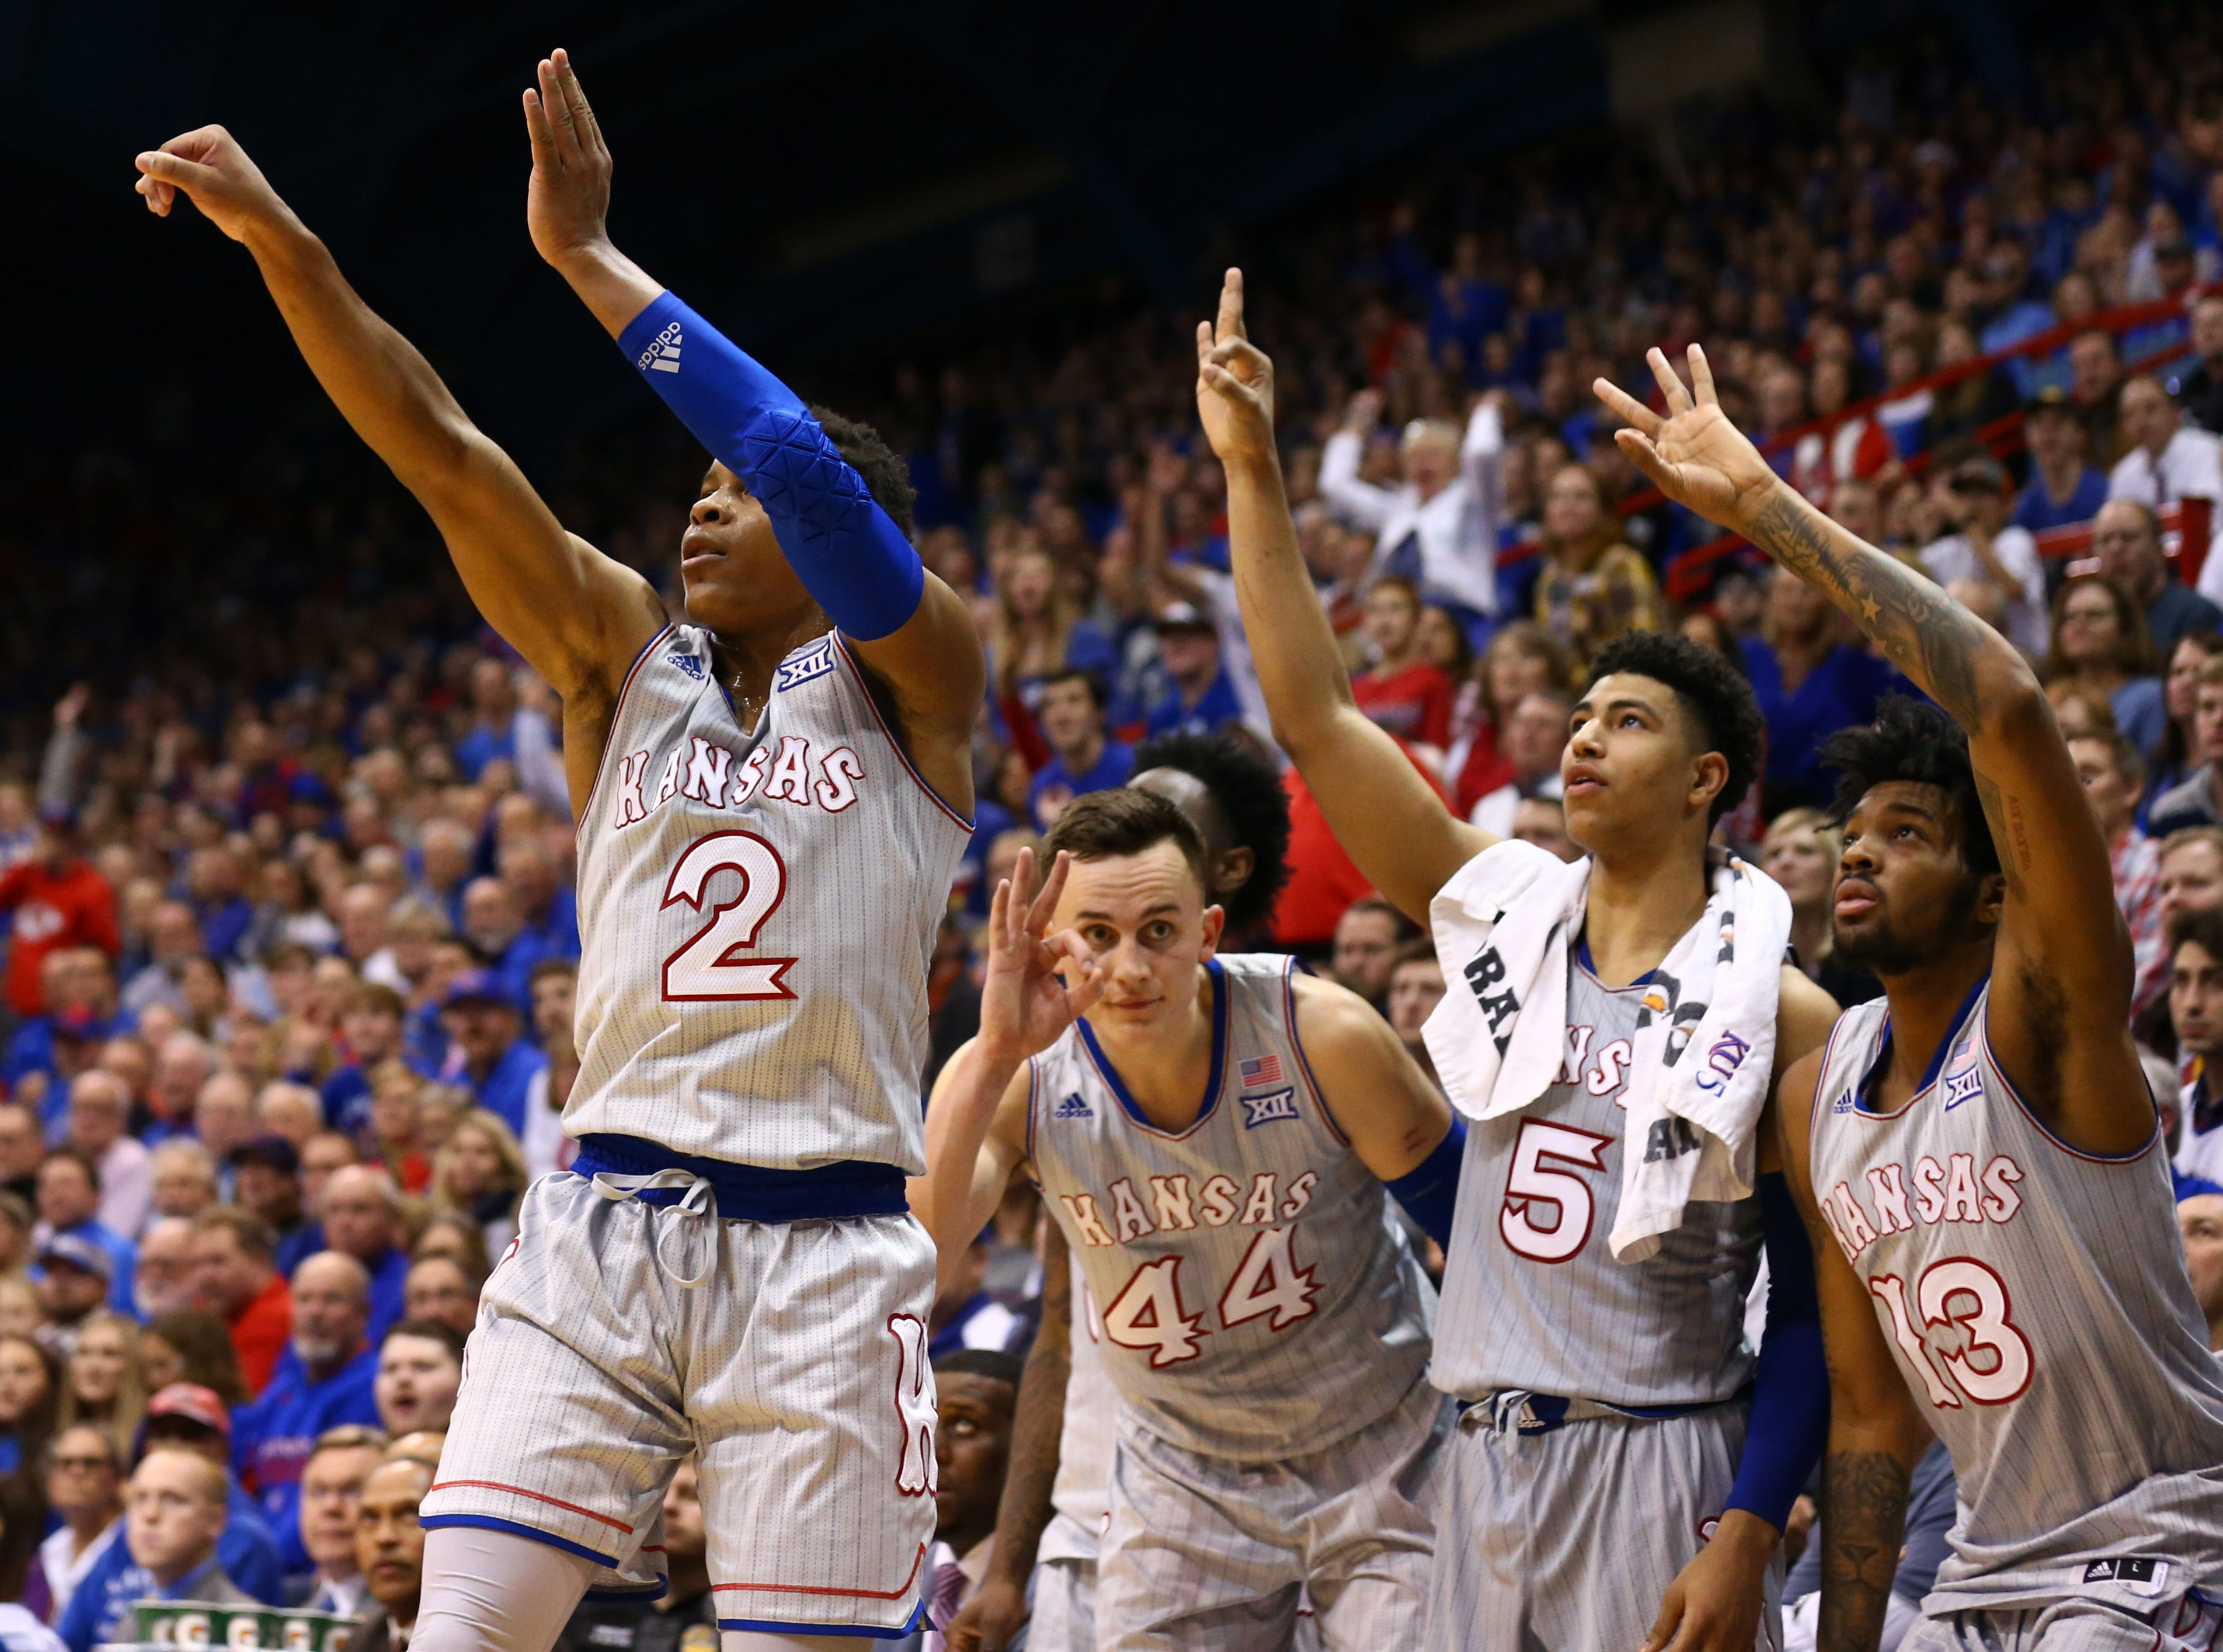 Dec. 18: The Kansas Jayhawks bench celebrates as guard Charlie Moore (2) scores against the South Dakota Coyotes in the second half at Allen Fieldhouse.